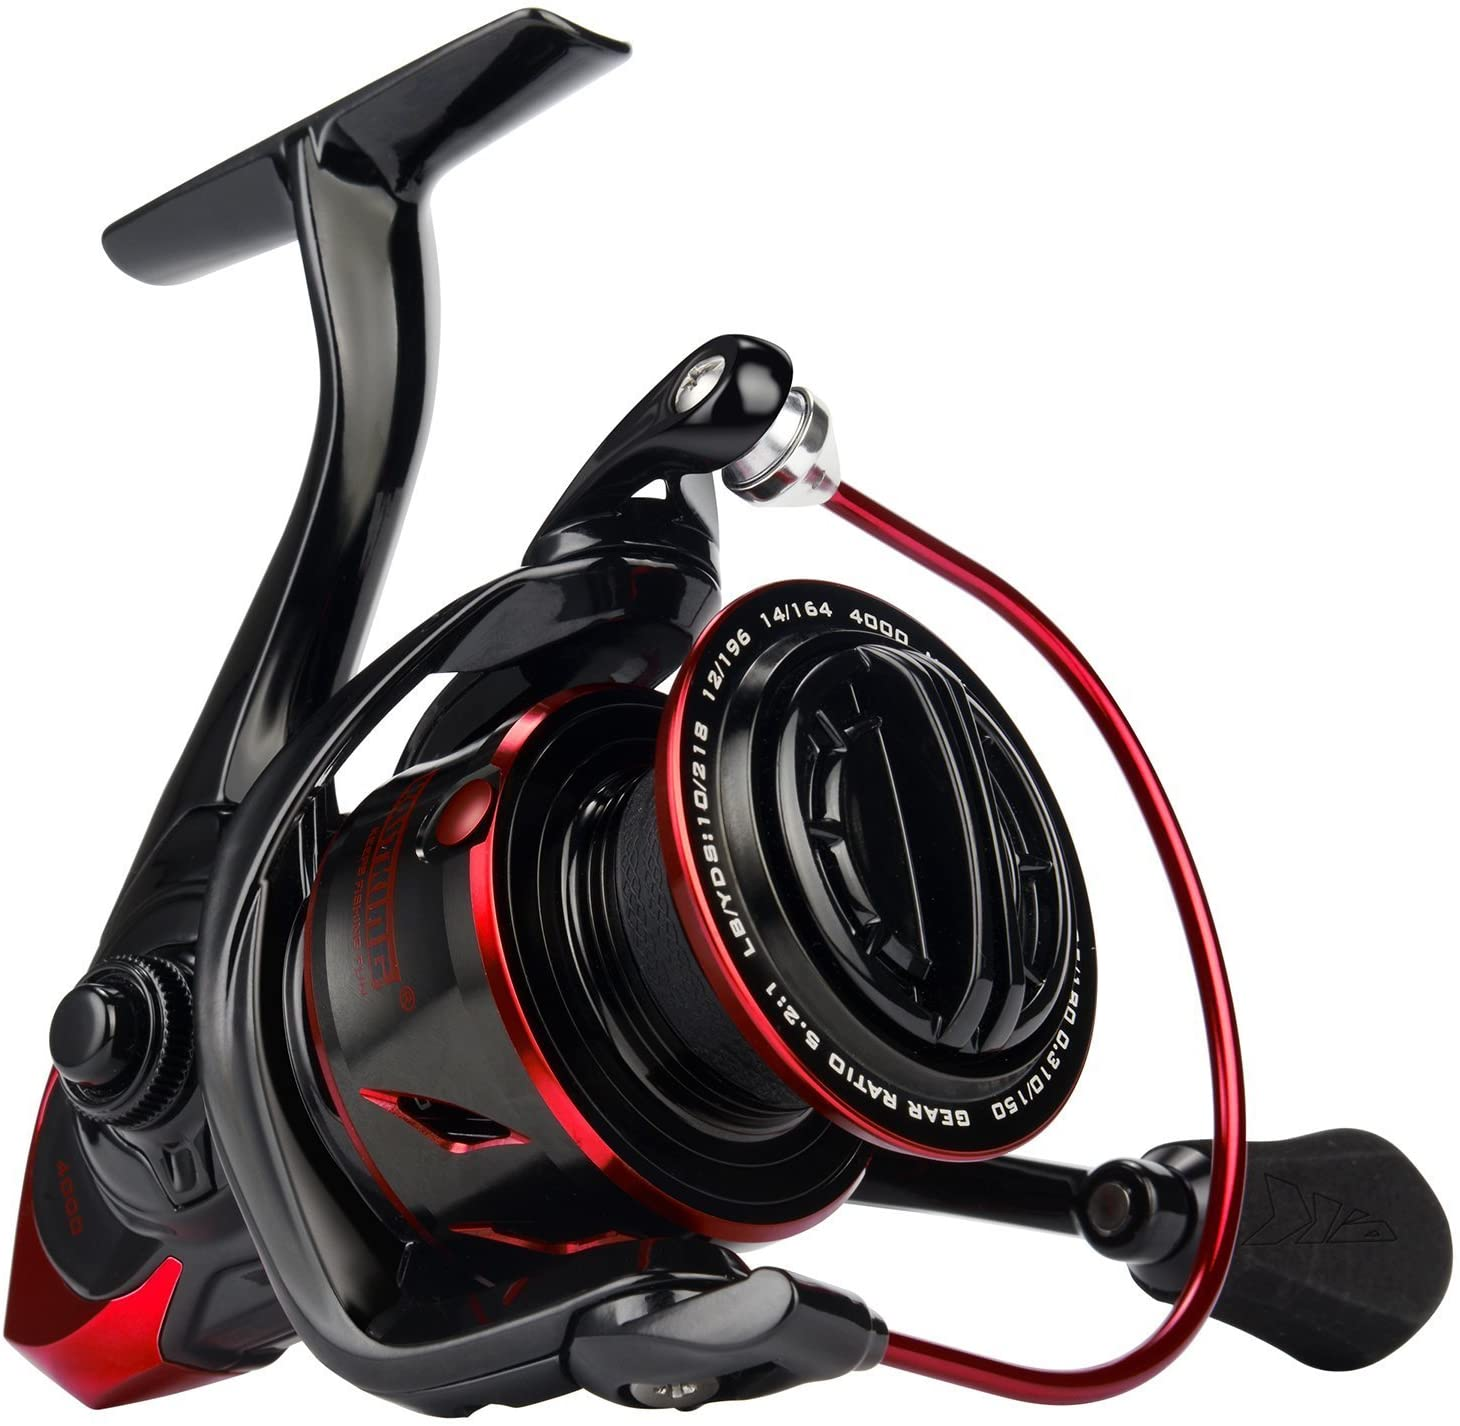 KastKing Sharky III Fishing Reel - New Spinning Reel - Carbon Fiber 39.5 LBs Max Drag - 10+1 Stainless BB for Saltwater or Freshwater - Oversize Shaft - Super Value!